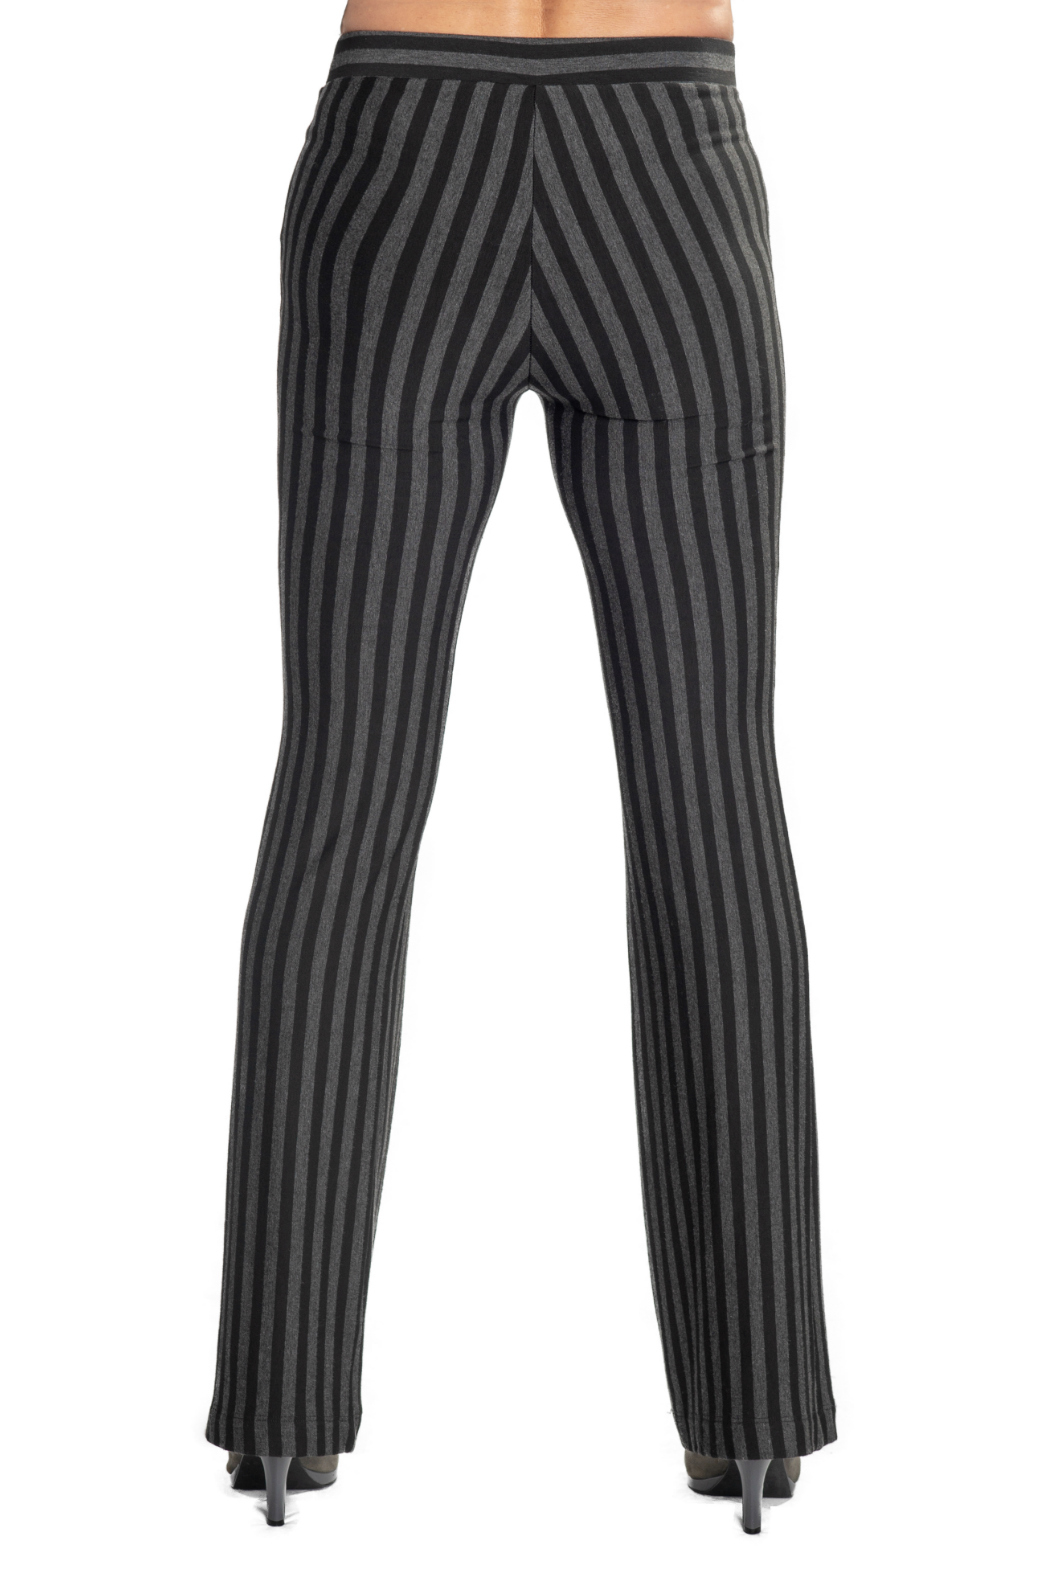 CAPOTE Flare Striped Pant - Side Cropped Image